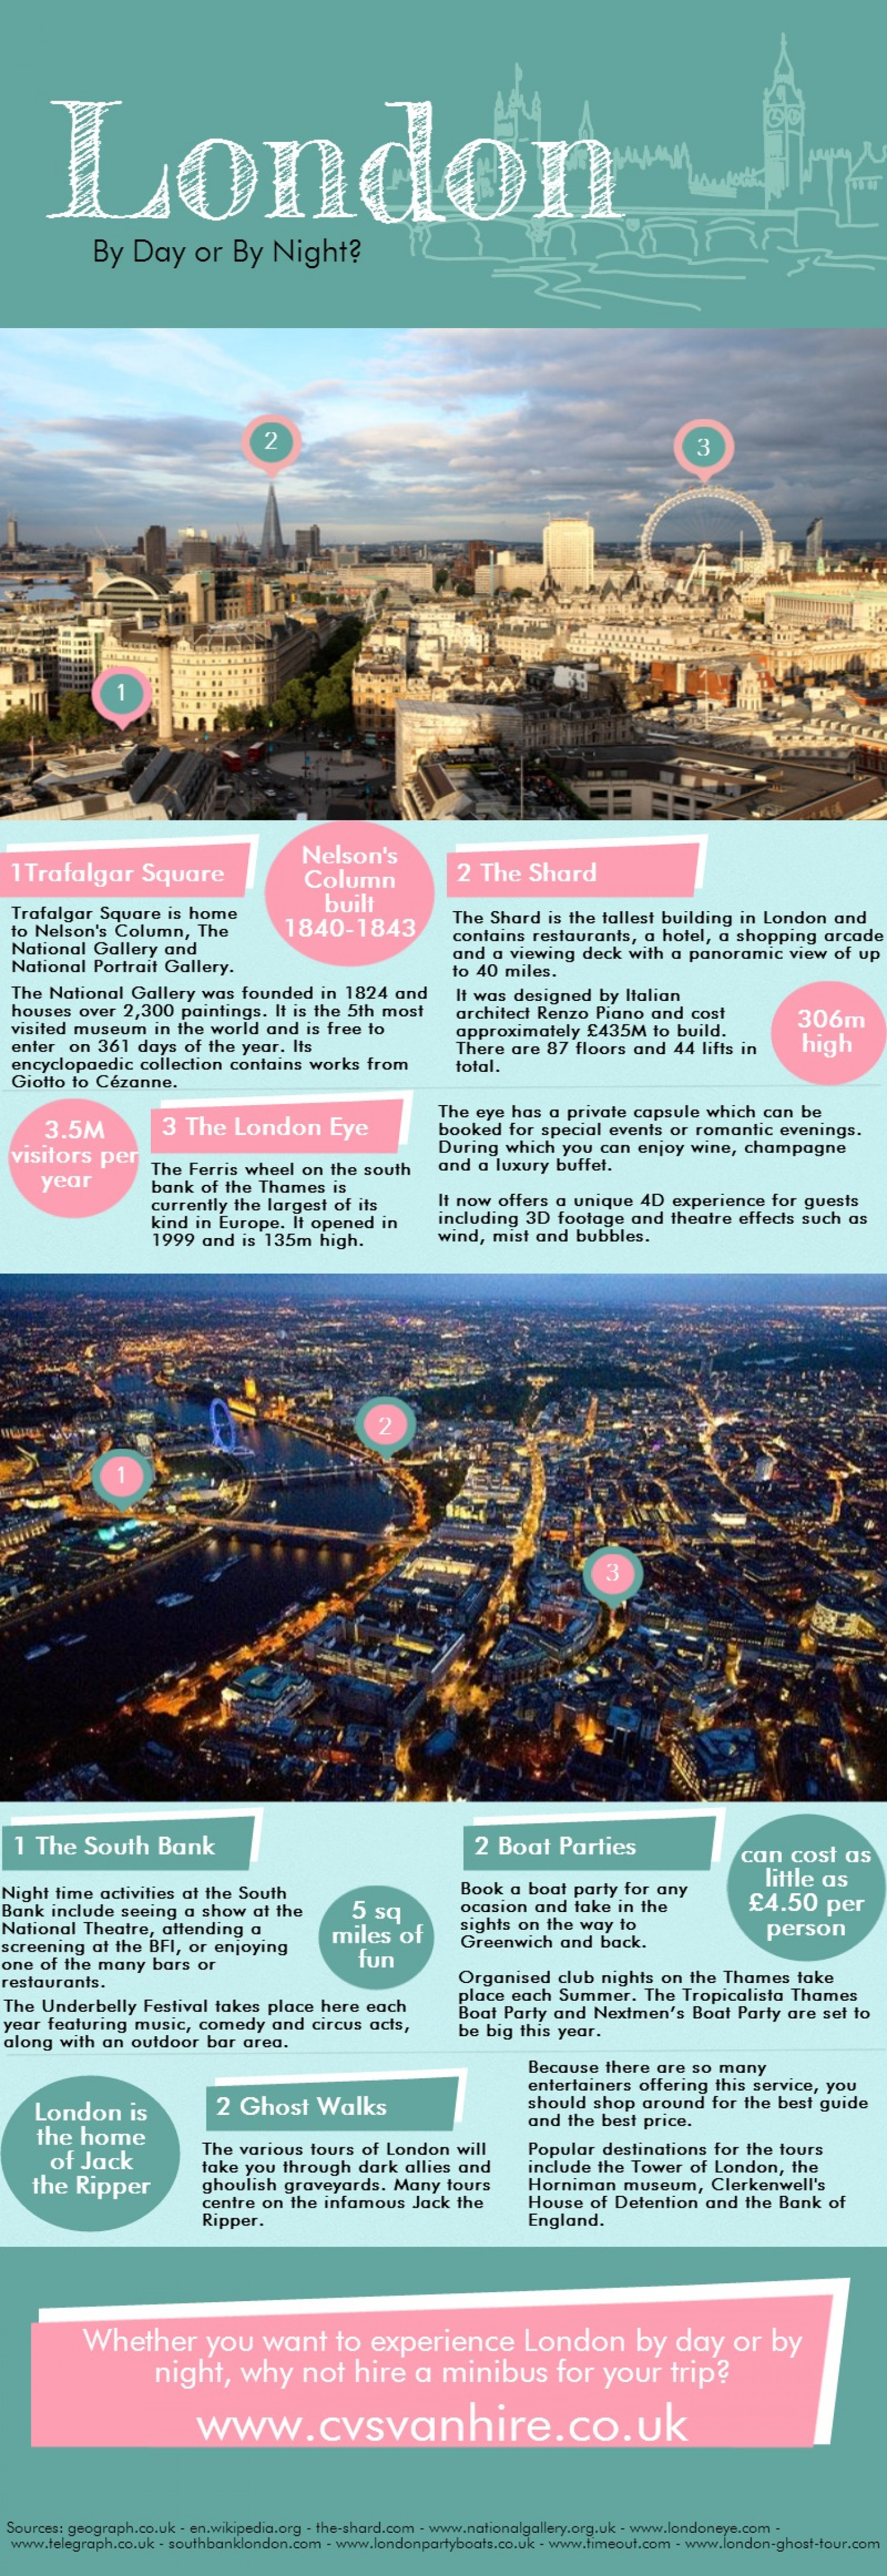 London: By Day or By Night? Infographic